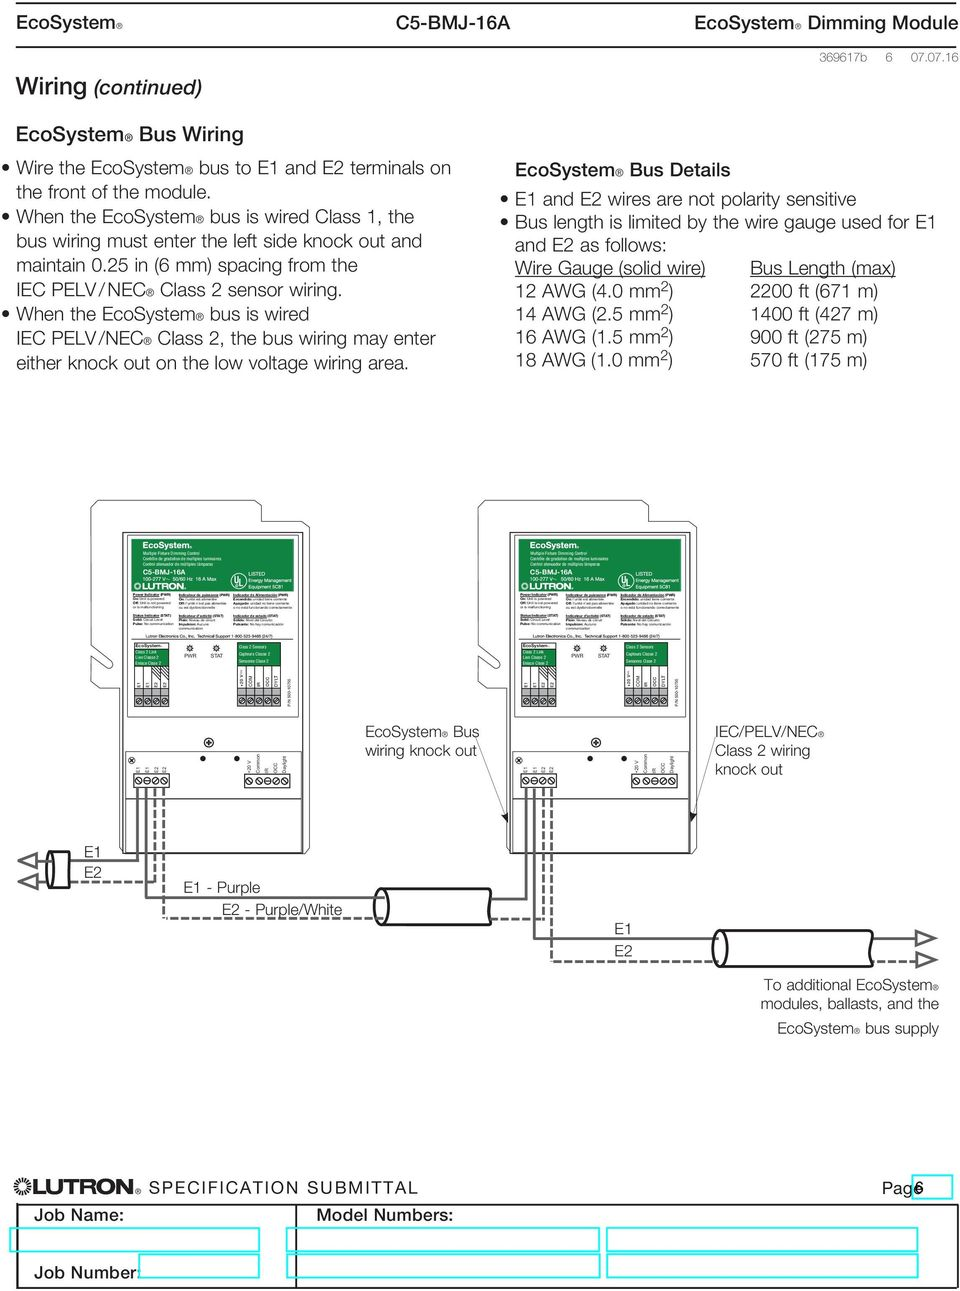 medium resolution of when the ecosystem bus is wired iec pelv nec class 2 the bus wiring